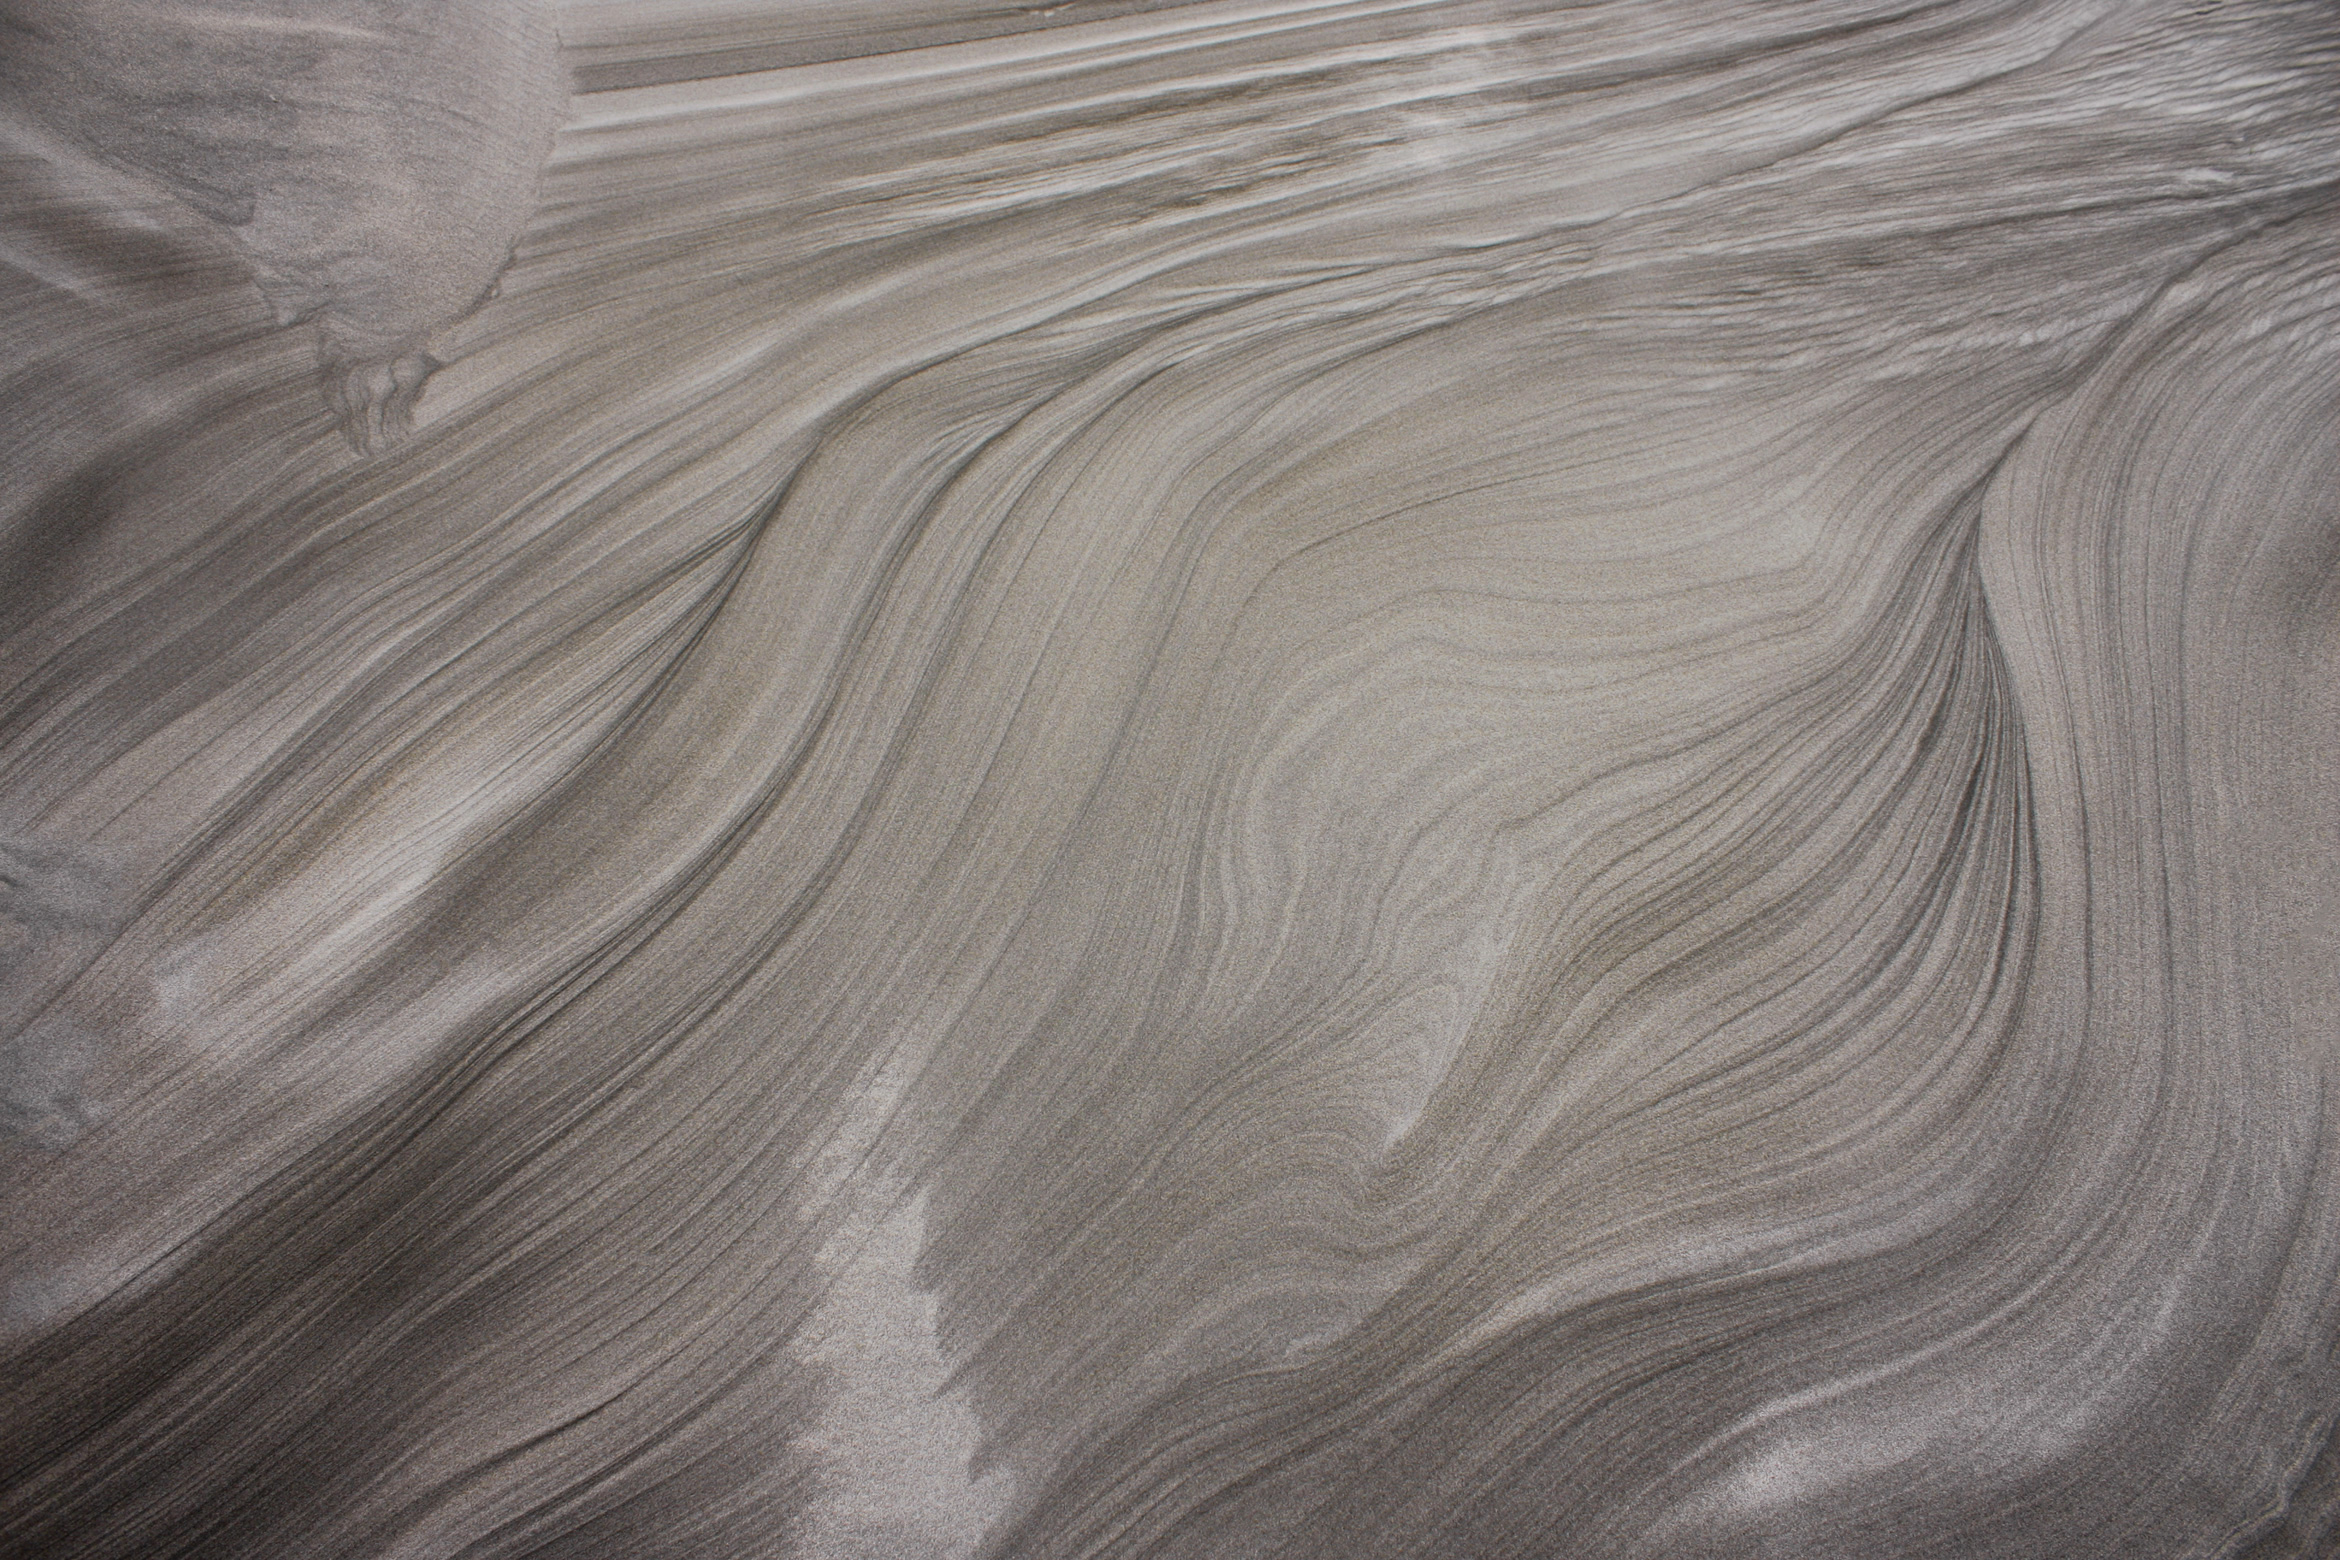 west-coast-black-sand-new-zealand1